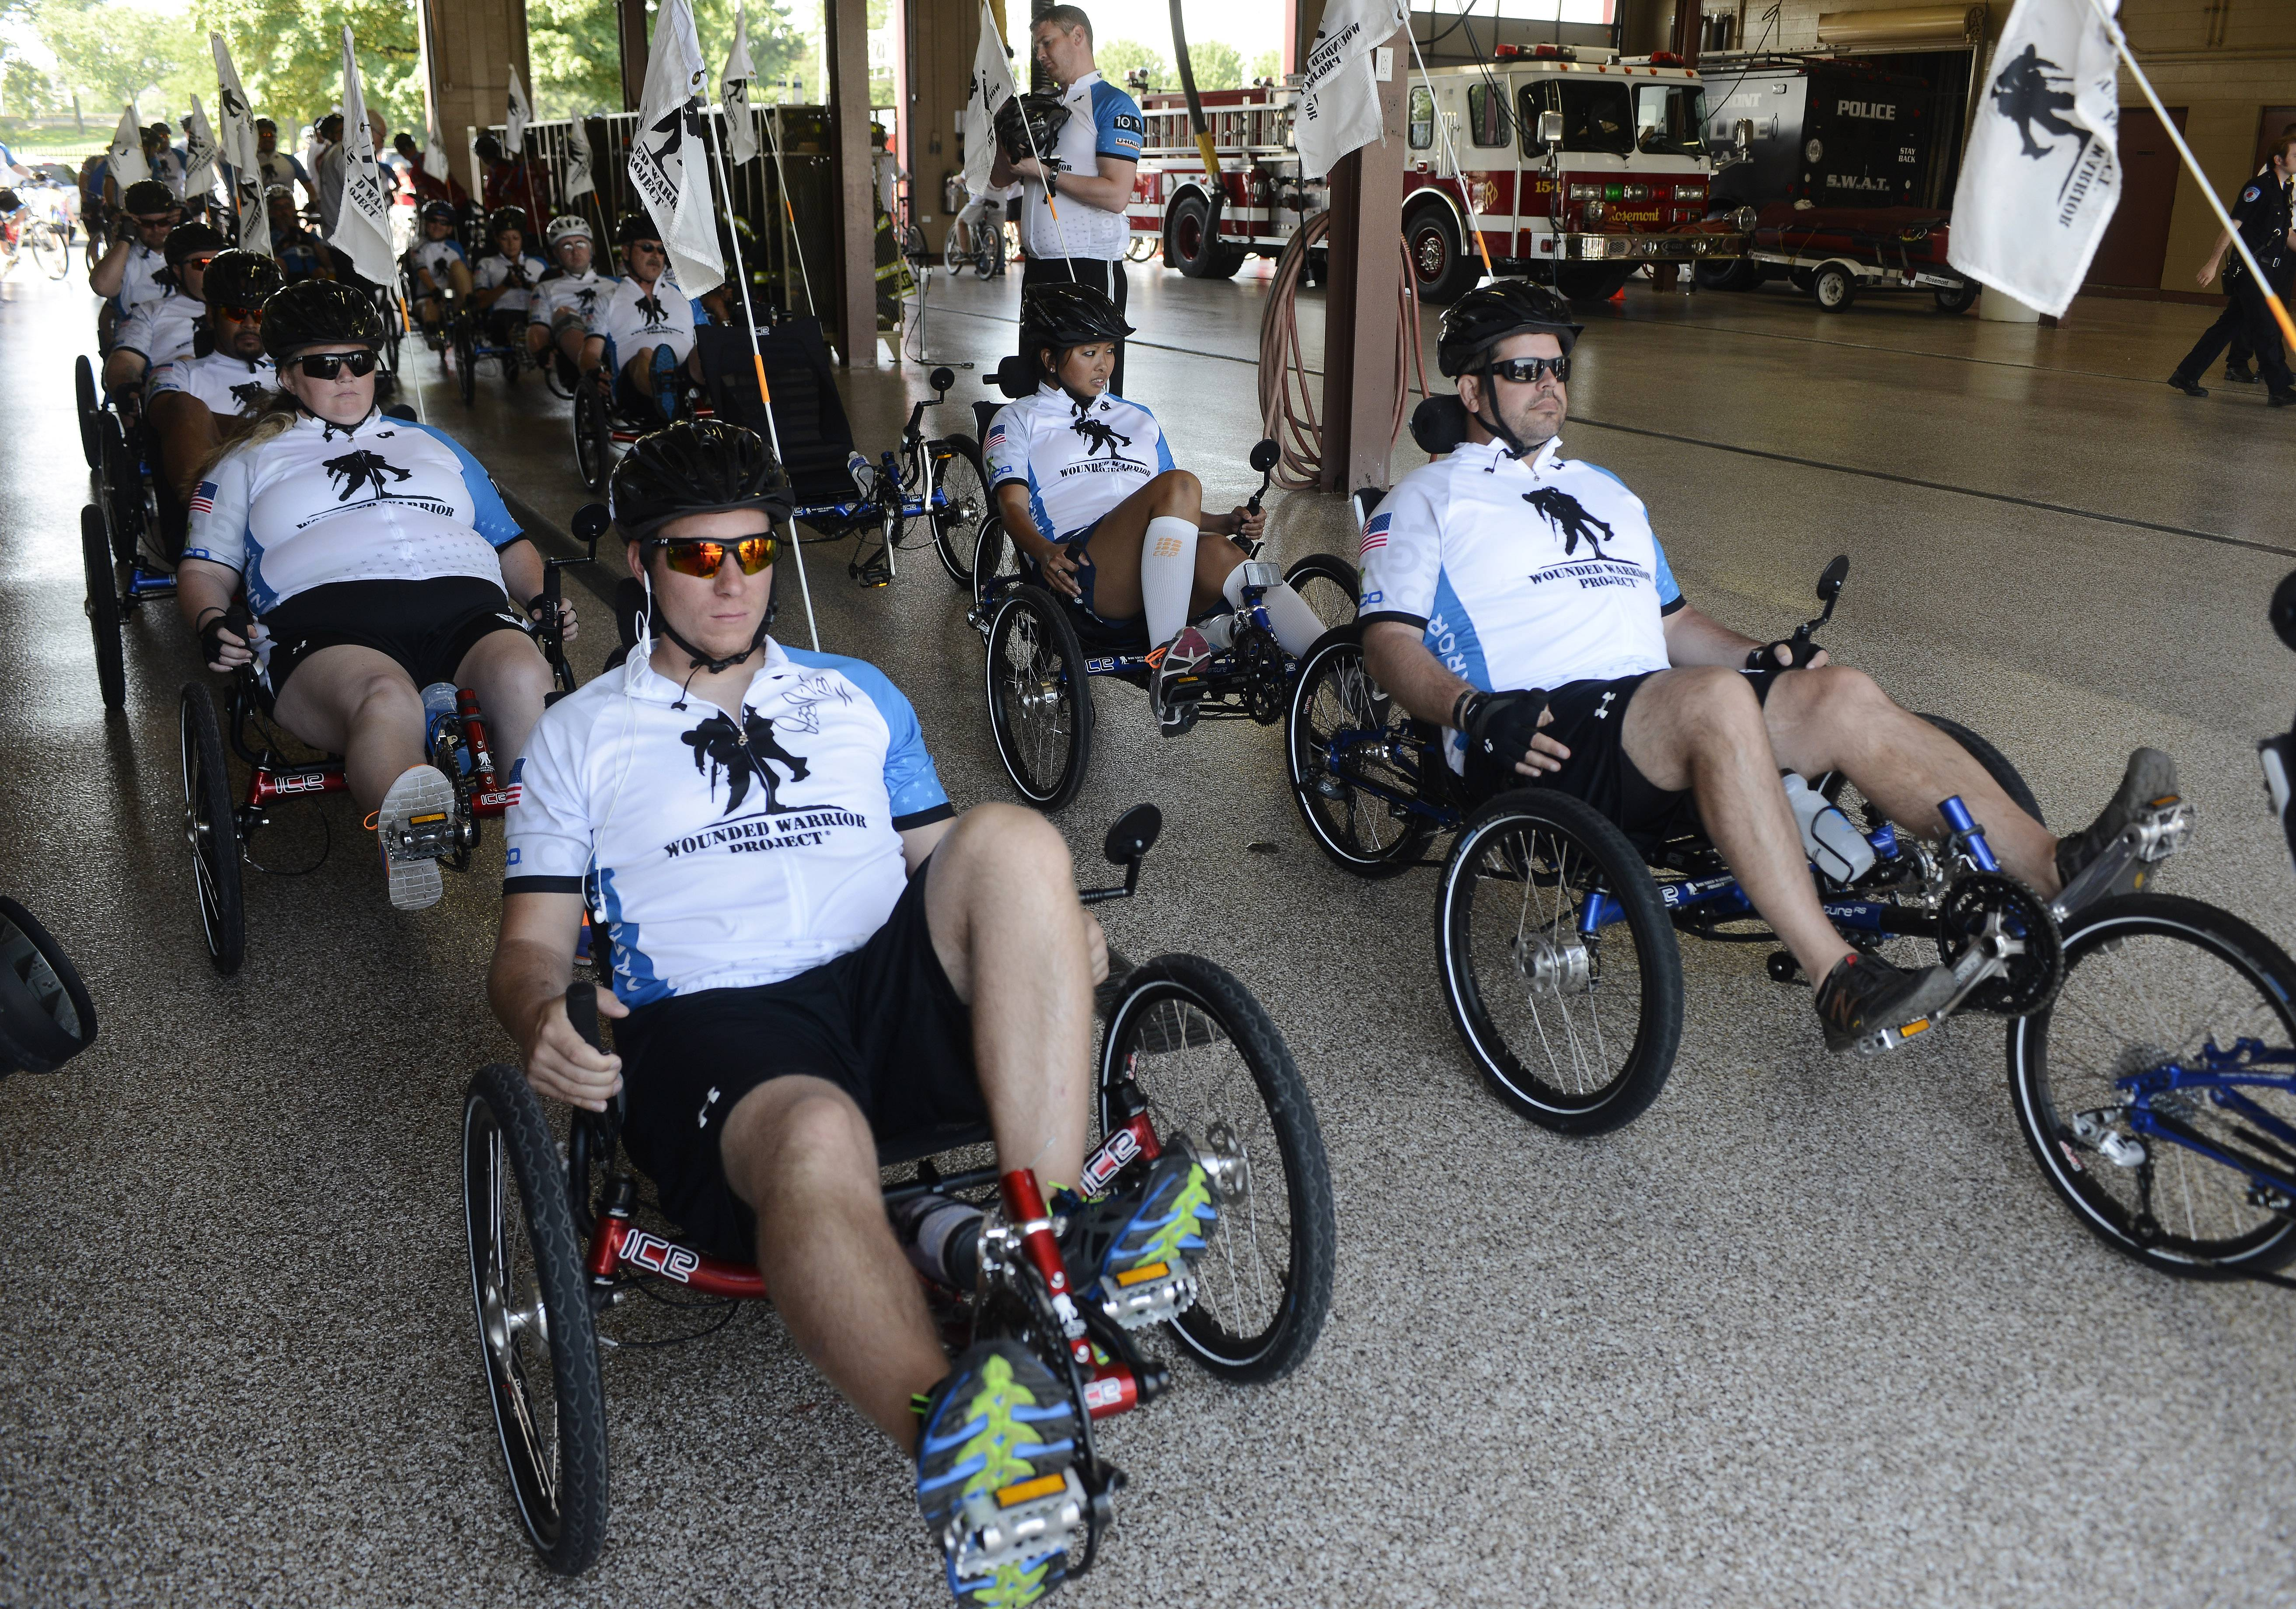 Jason Foster, left, of Colorado Springs, is among the riders participating this weekend in a series of cycling events sponsored by the Wounded Warrior Project. The group rode Friday from the Rosemont fire station on River Road, going 17 miles and ending at The Ballpark at Rosemont.